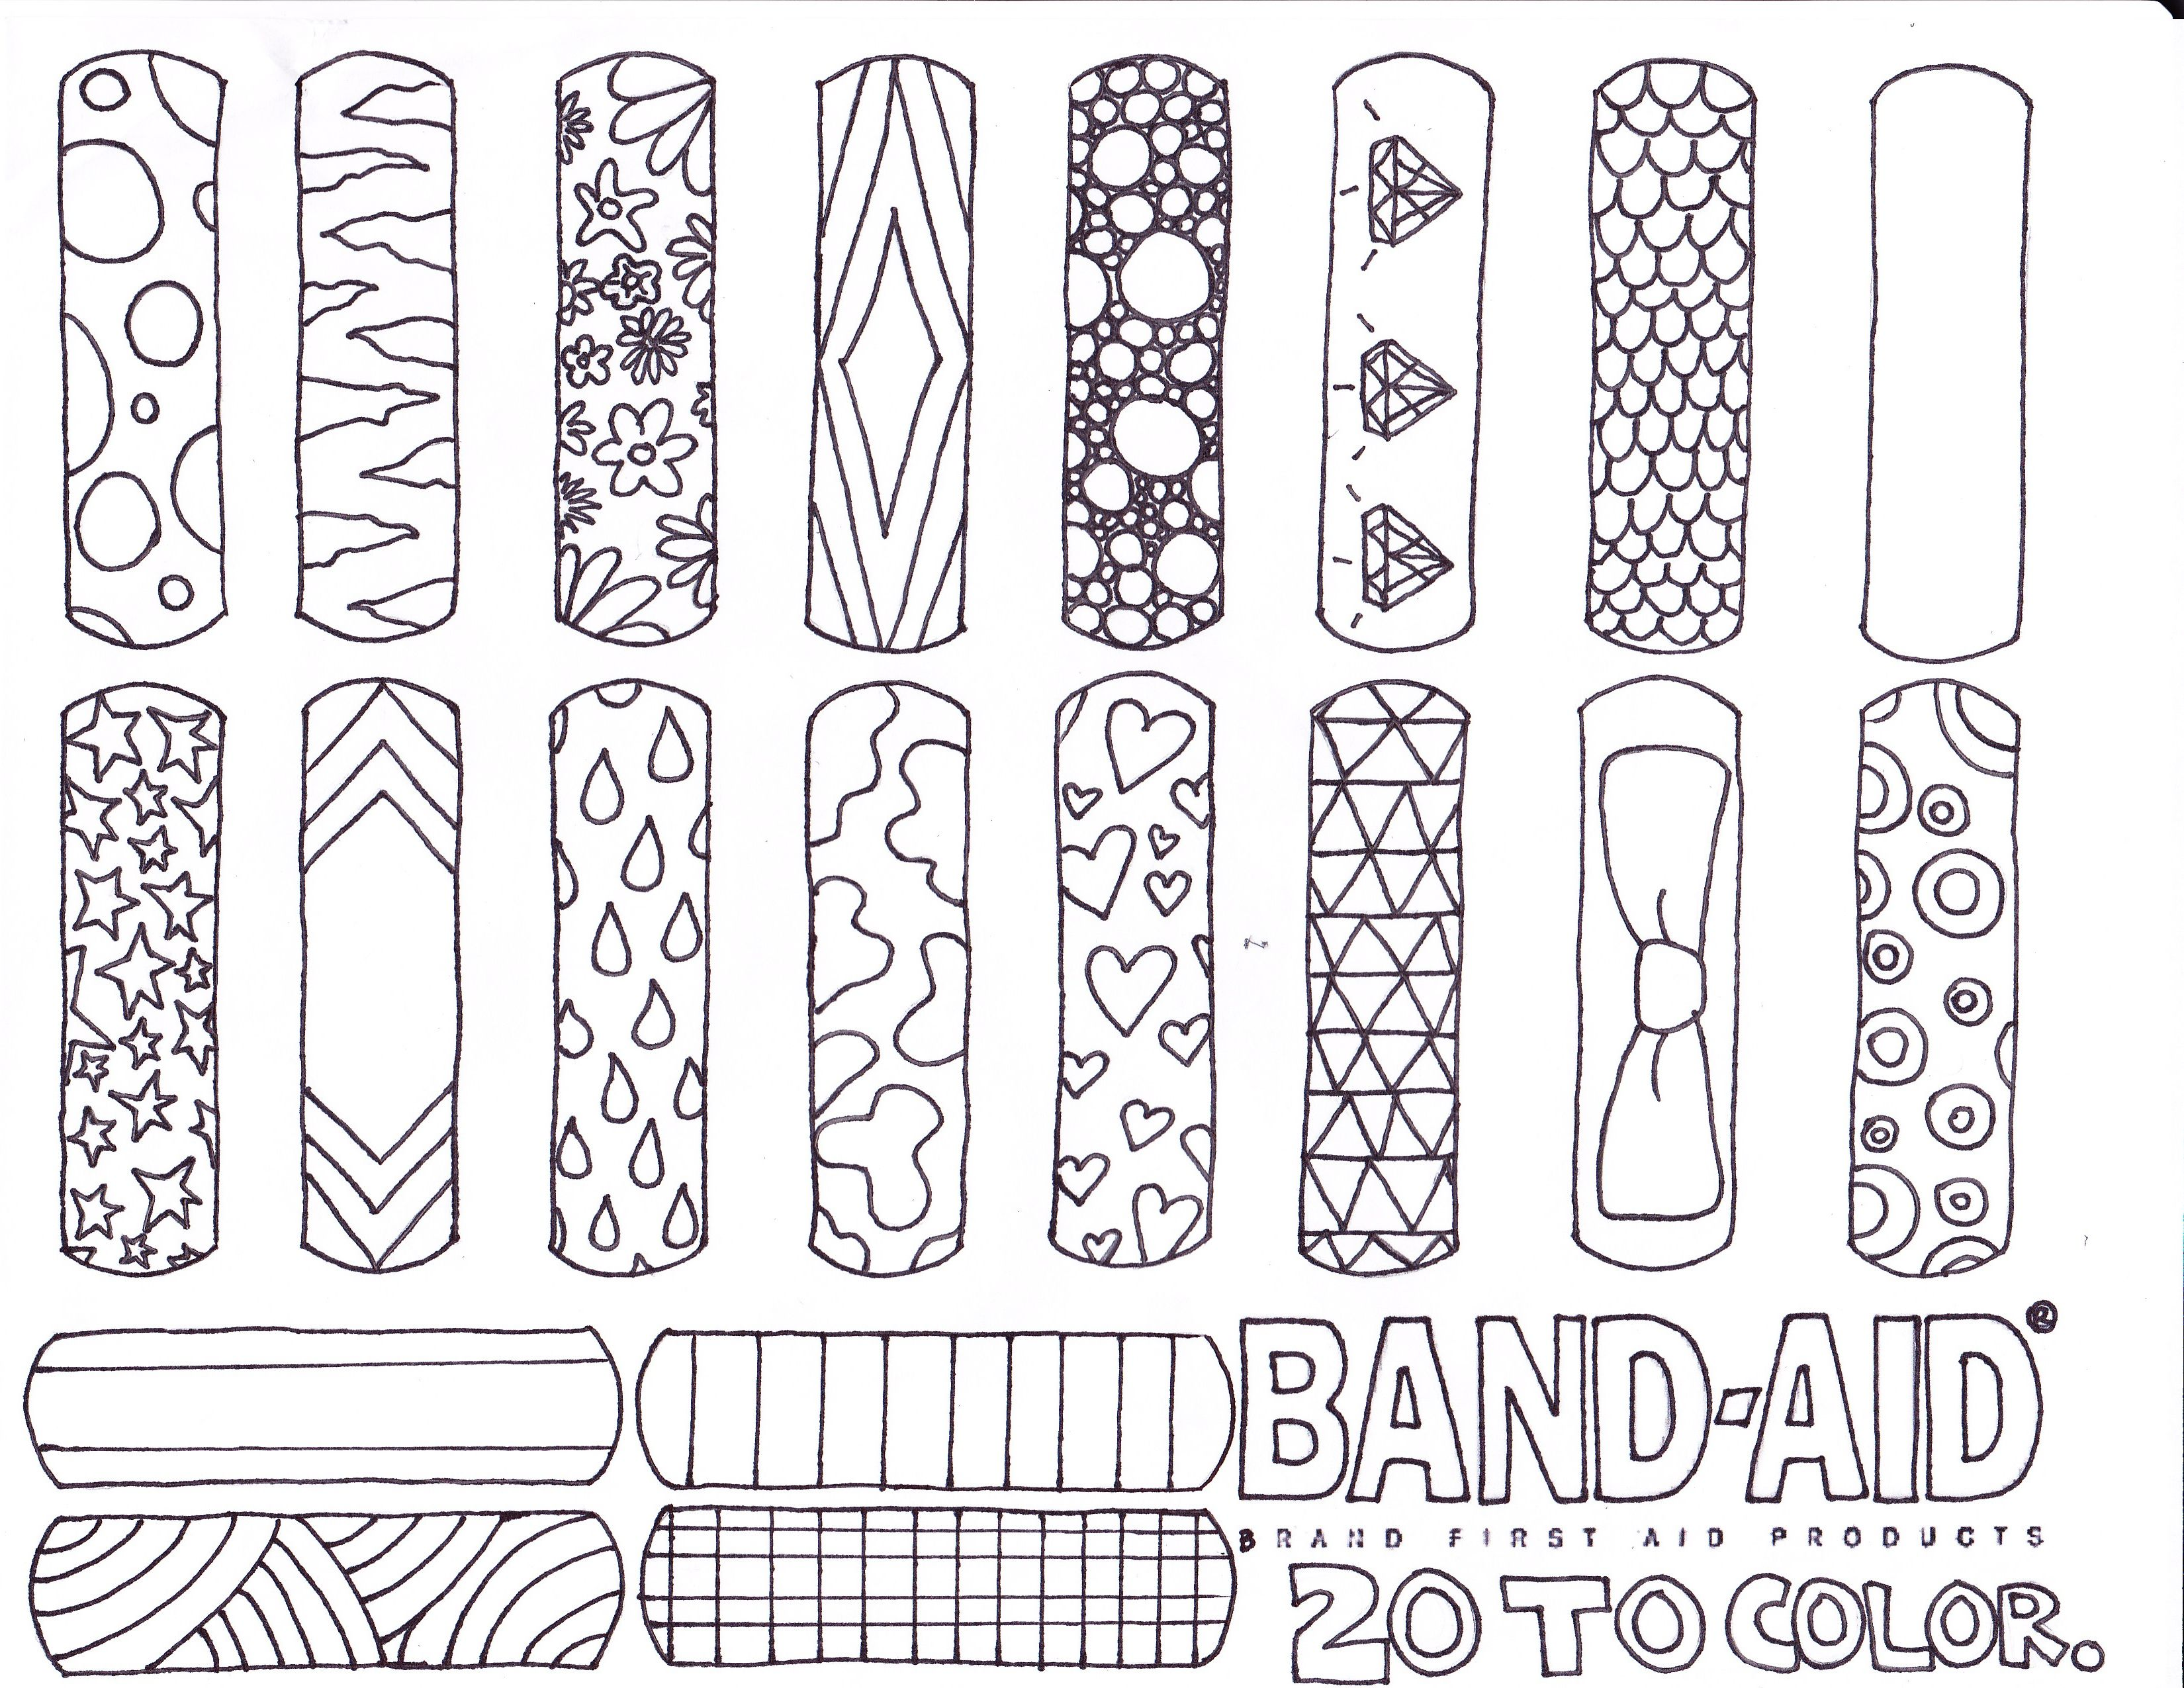 Challenging Coloring Pages Coloring Page Band Aid Invented